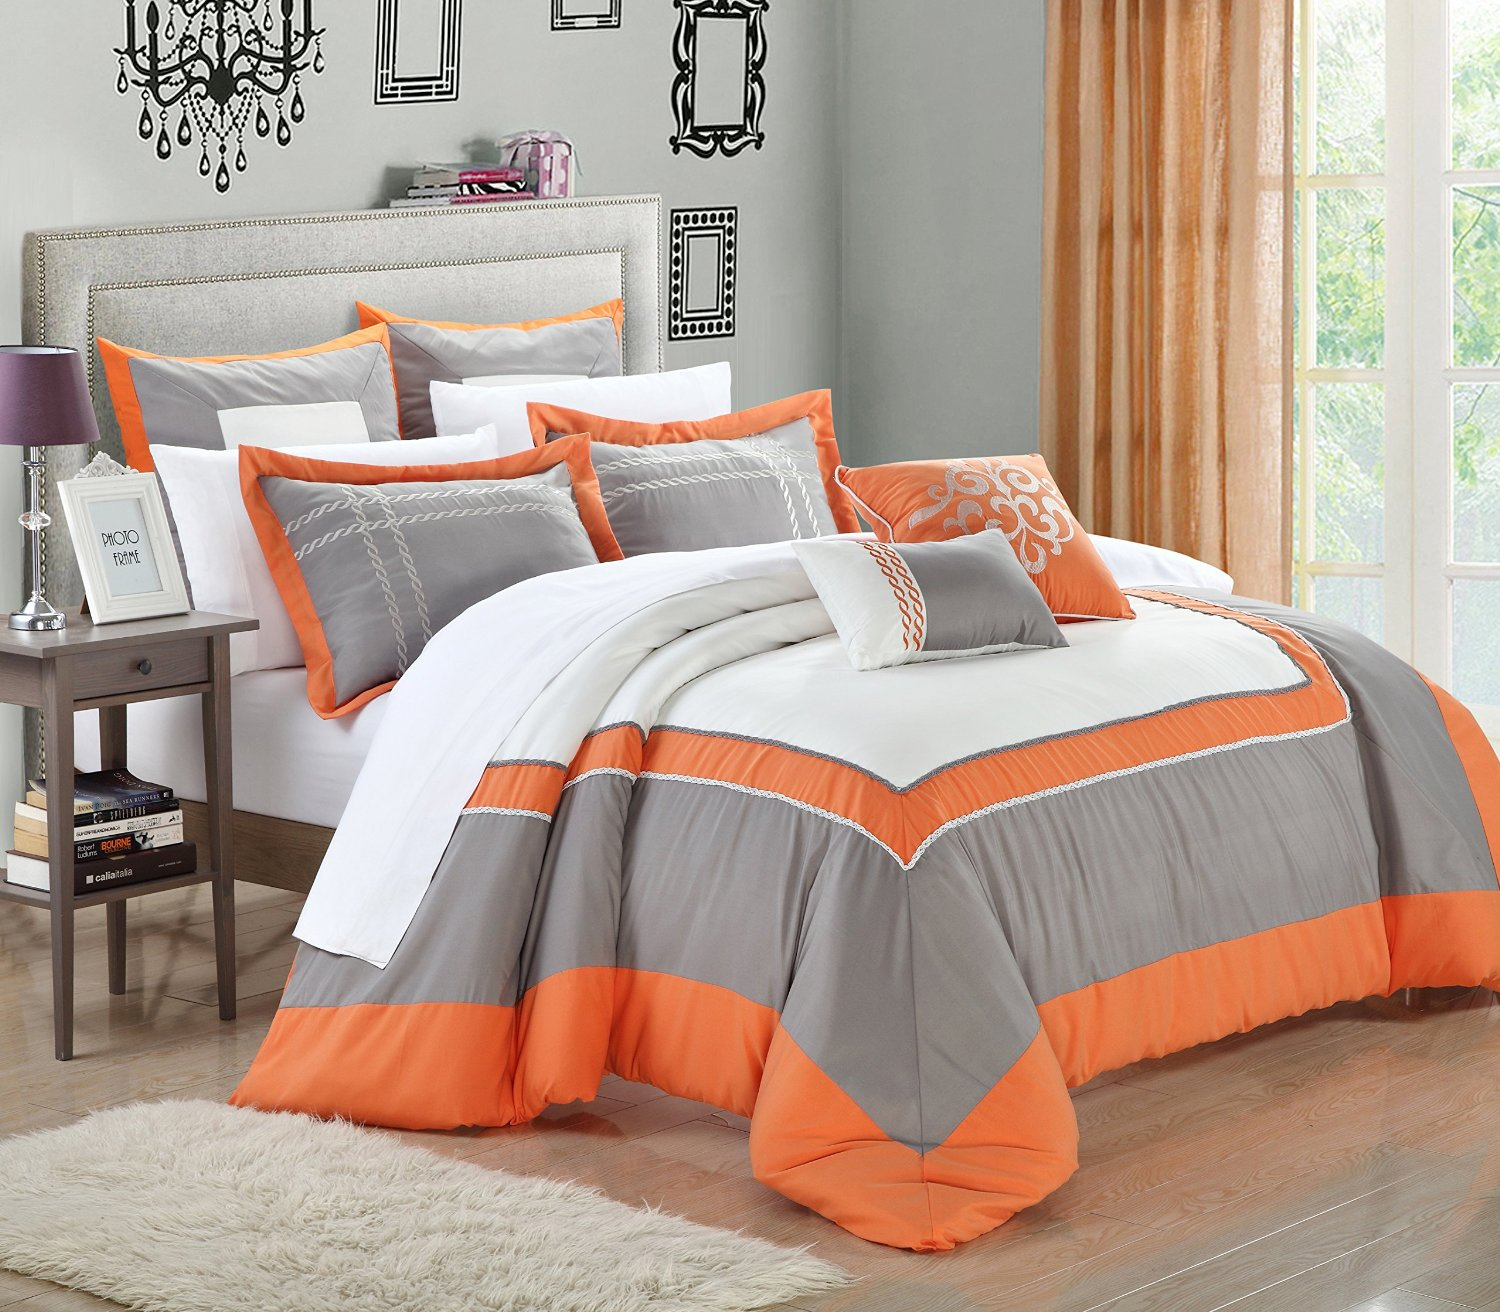 Total Fab Orange And Grey Bedding Sets